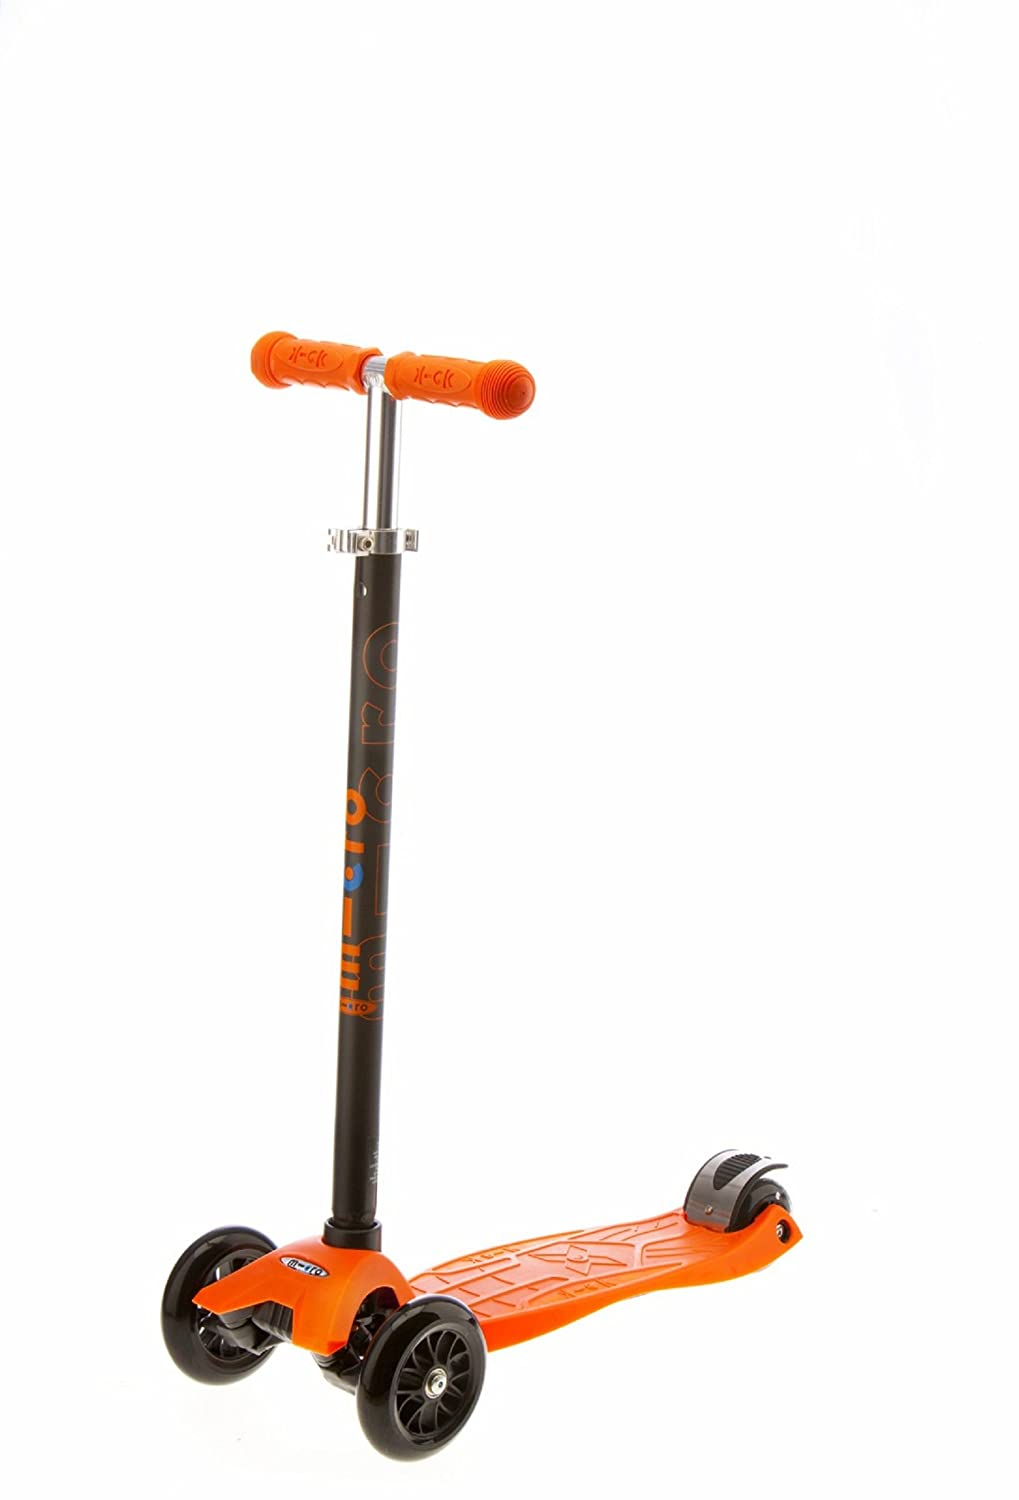 ORANGE with T-Bar Steering